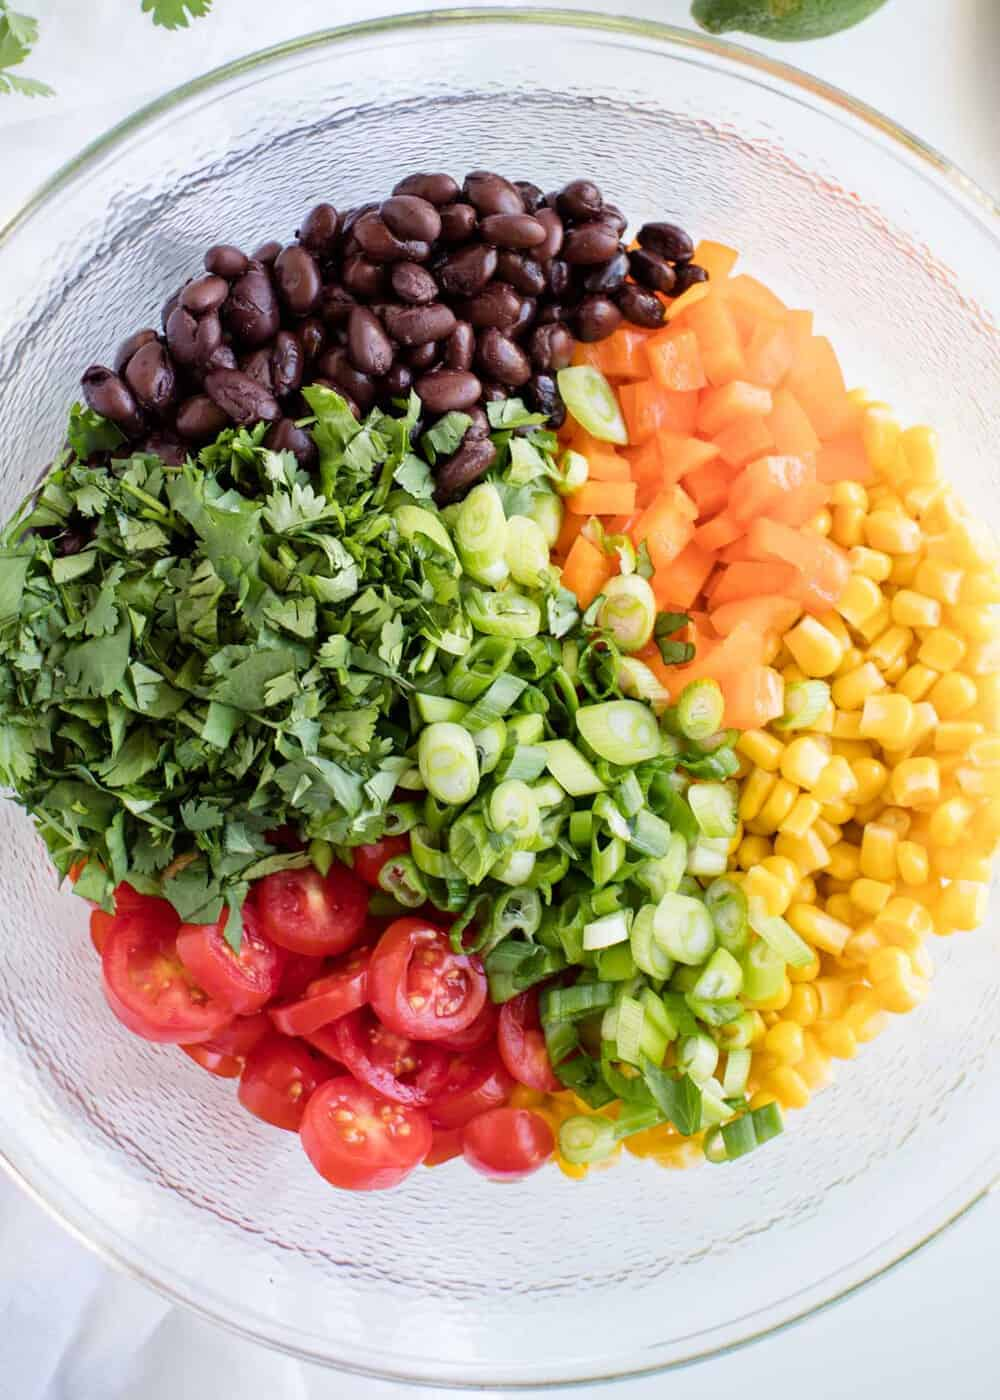 chopped ingredients for quinoa salad in a glass bowl